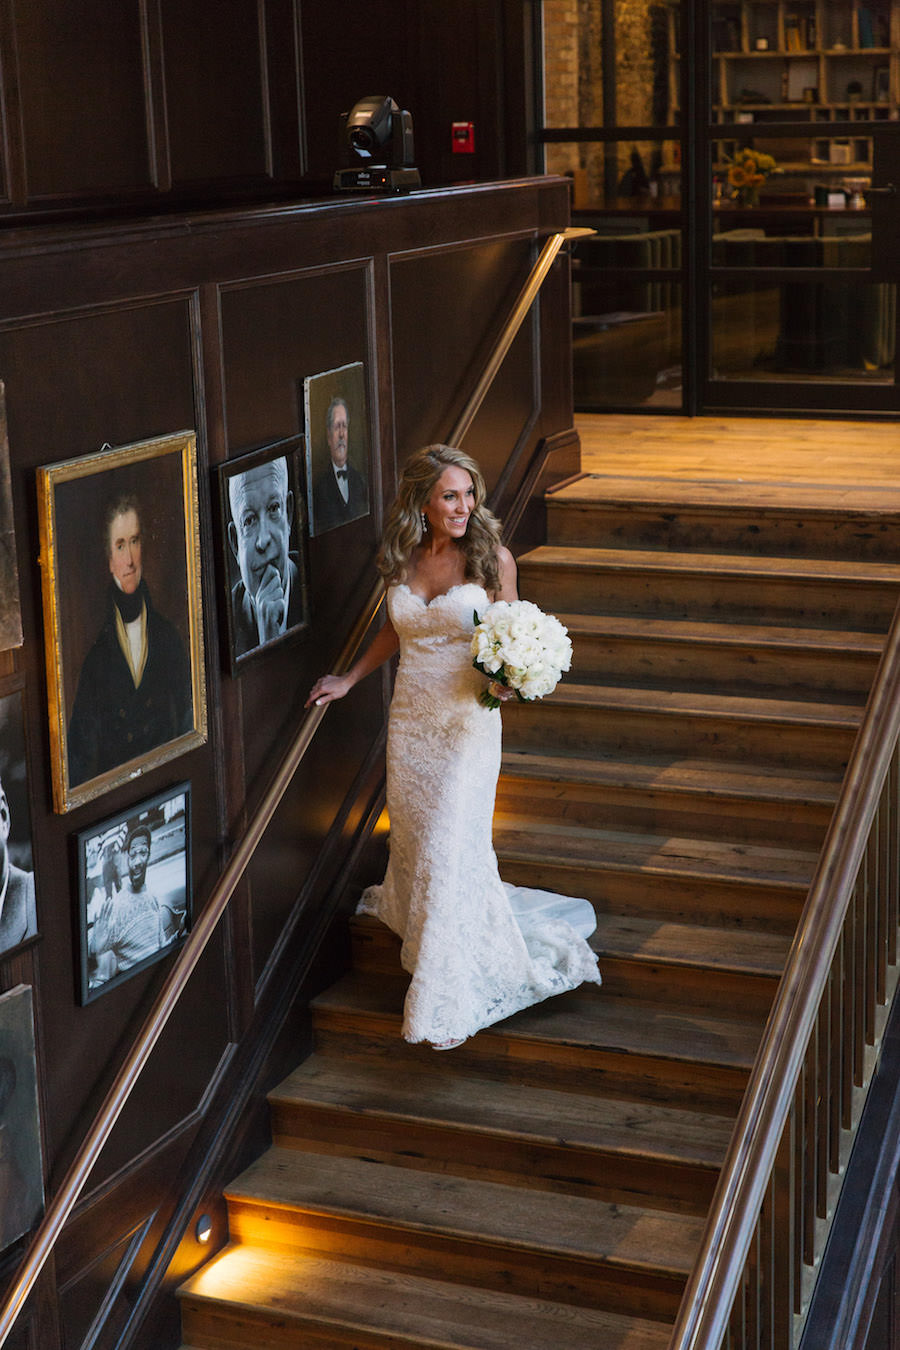 Wedding Ceremony, Bride Walking Down Stairs in Lace, Strapless Wedding Dress   South Tampa Modern, Vintage Wedding Venue Oxford Exchange